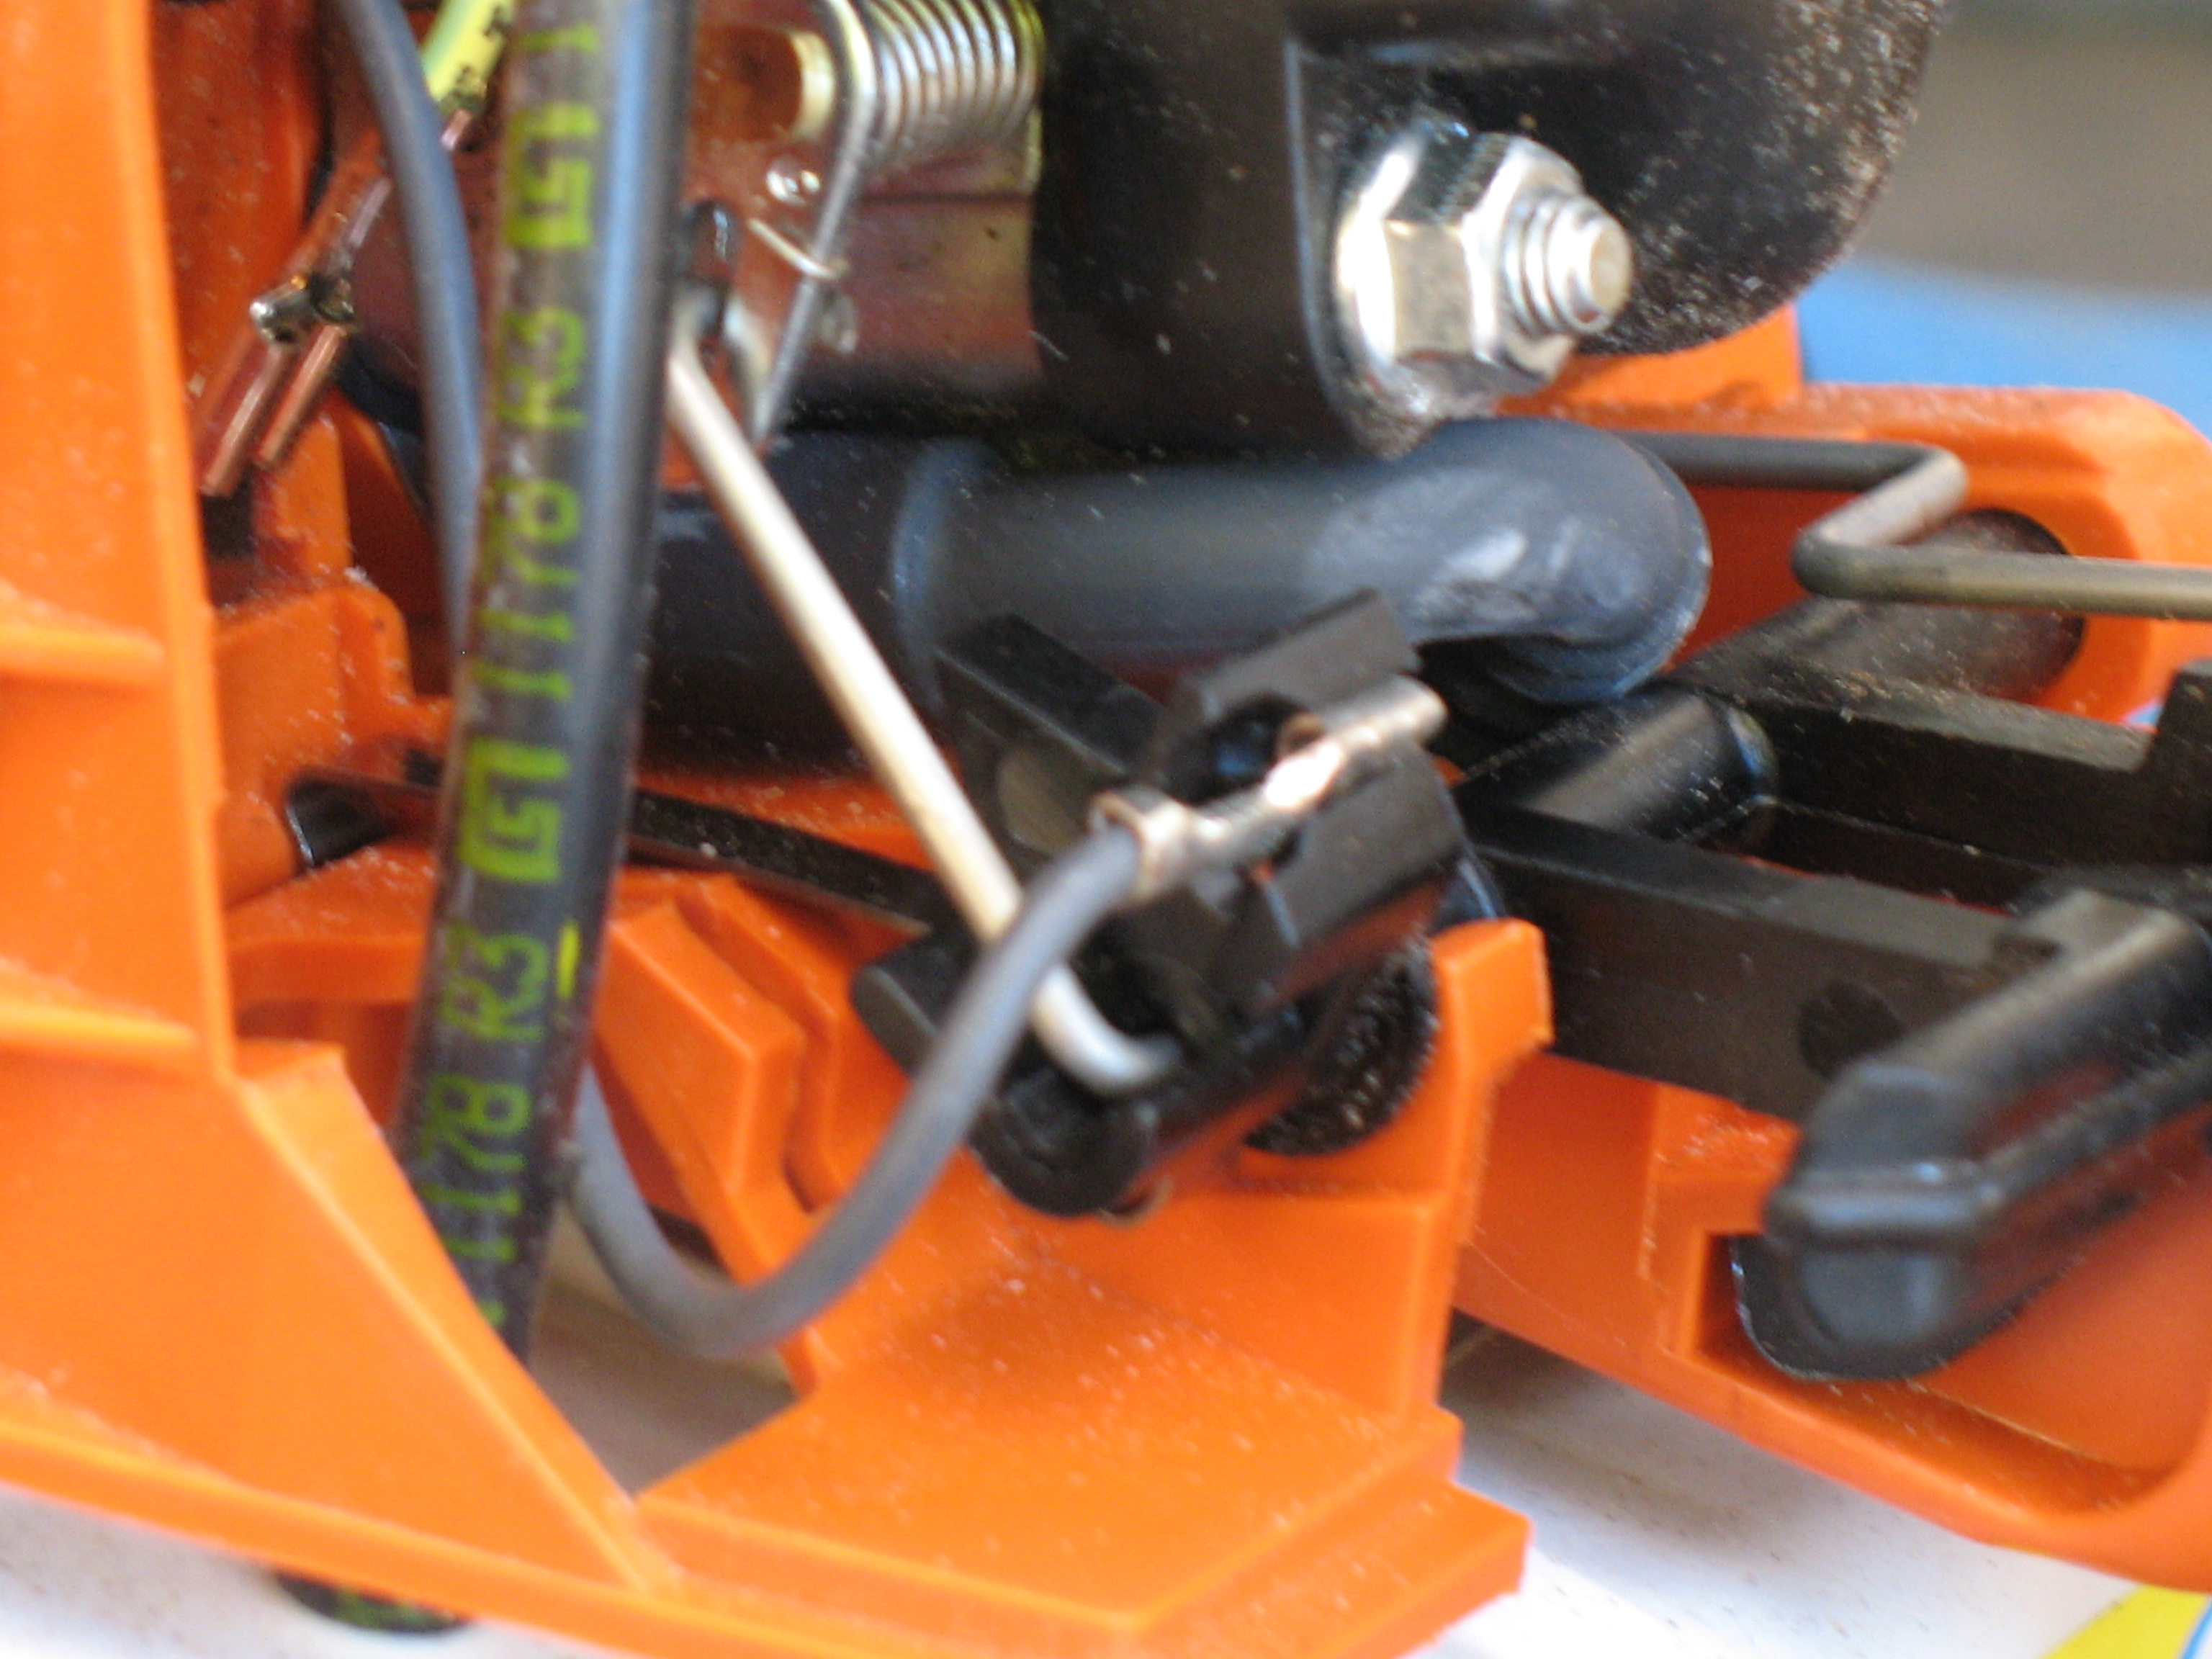 stihl chainsaw parts diagram stihl free engine image for user manual download. Black Bedroom Furniture Sets. Home Design Ideas